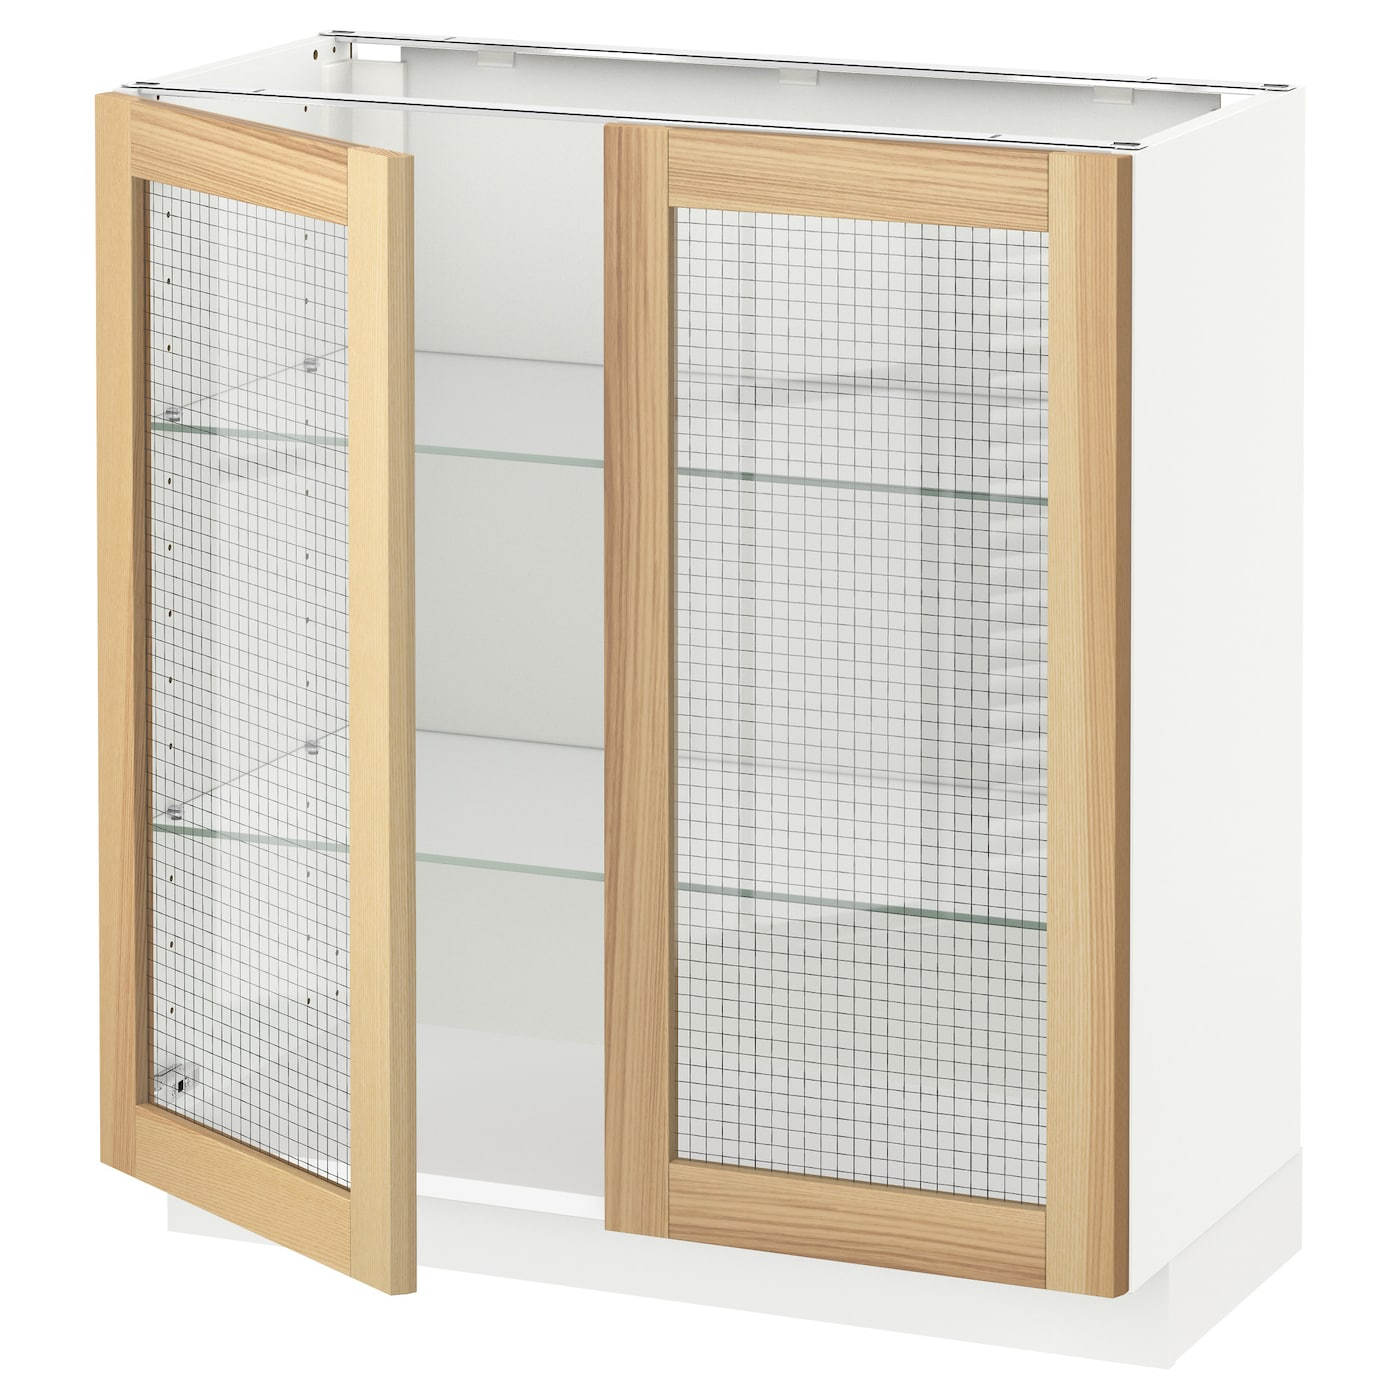 IKEA METOD base cabinet with 2 glass doors Sturdy frame construction, 18 mm thick.